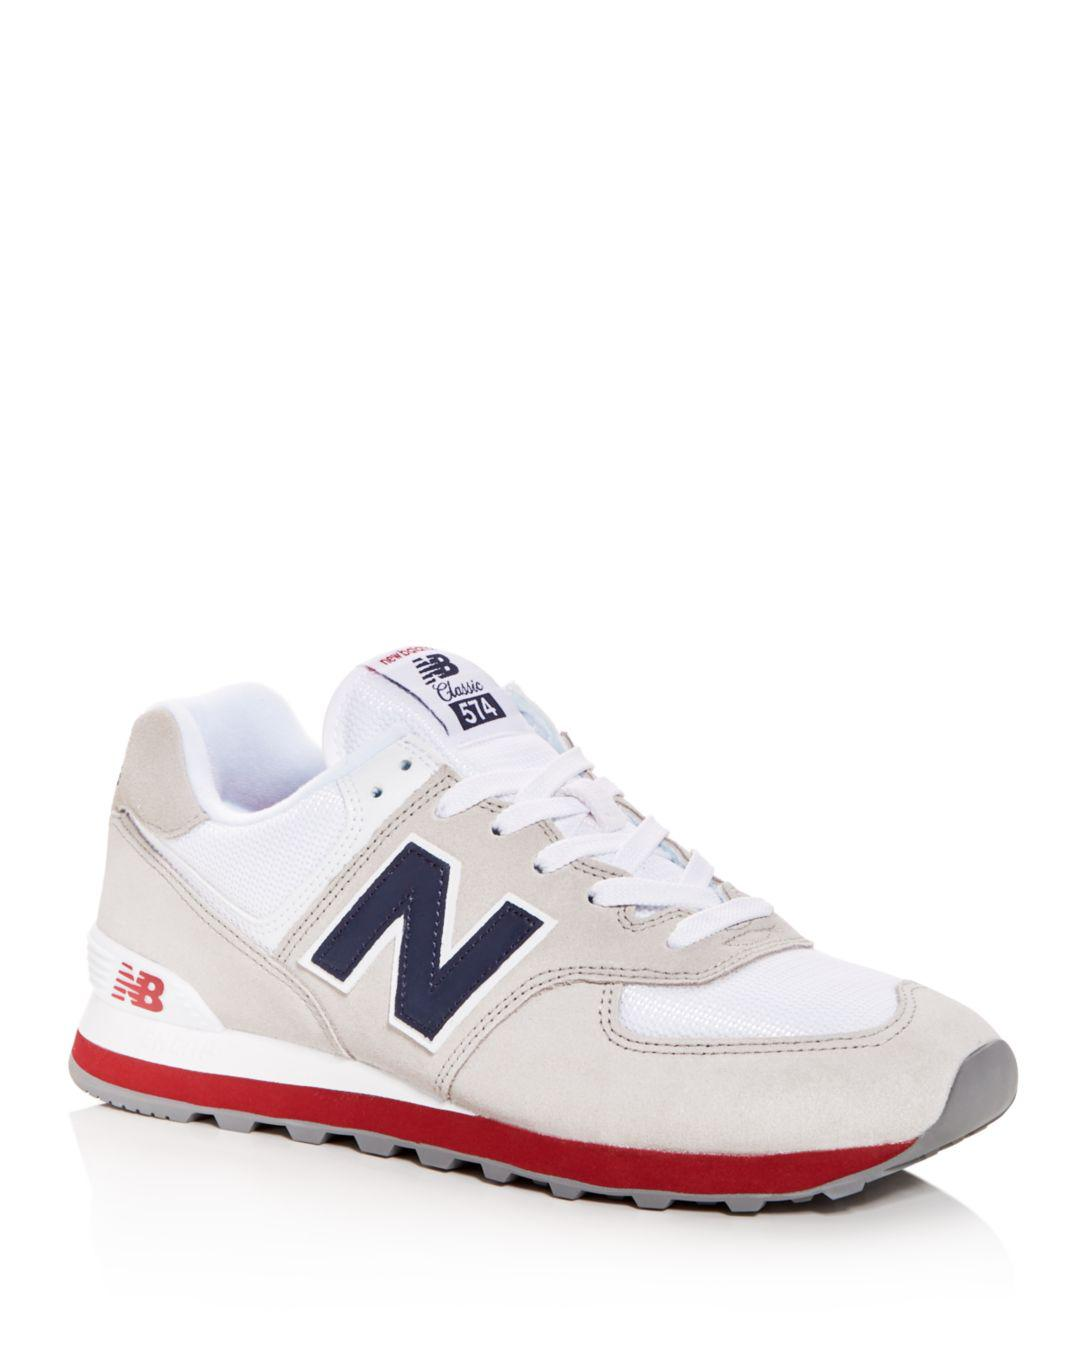 sports shoes 15bda ccf61 New Balance Men s Classic 574 Lace Up Sneakers in White for Men - Lyst